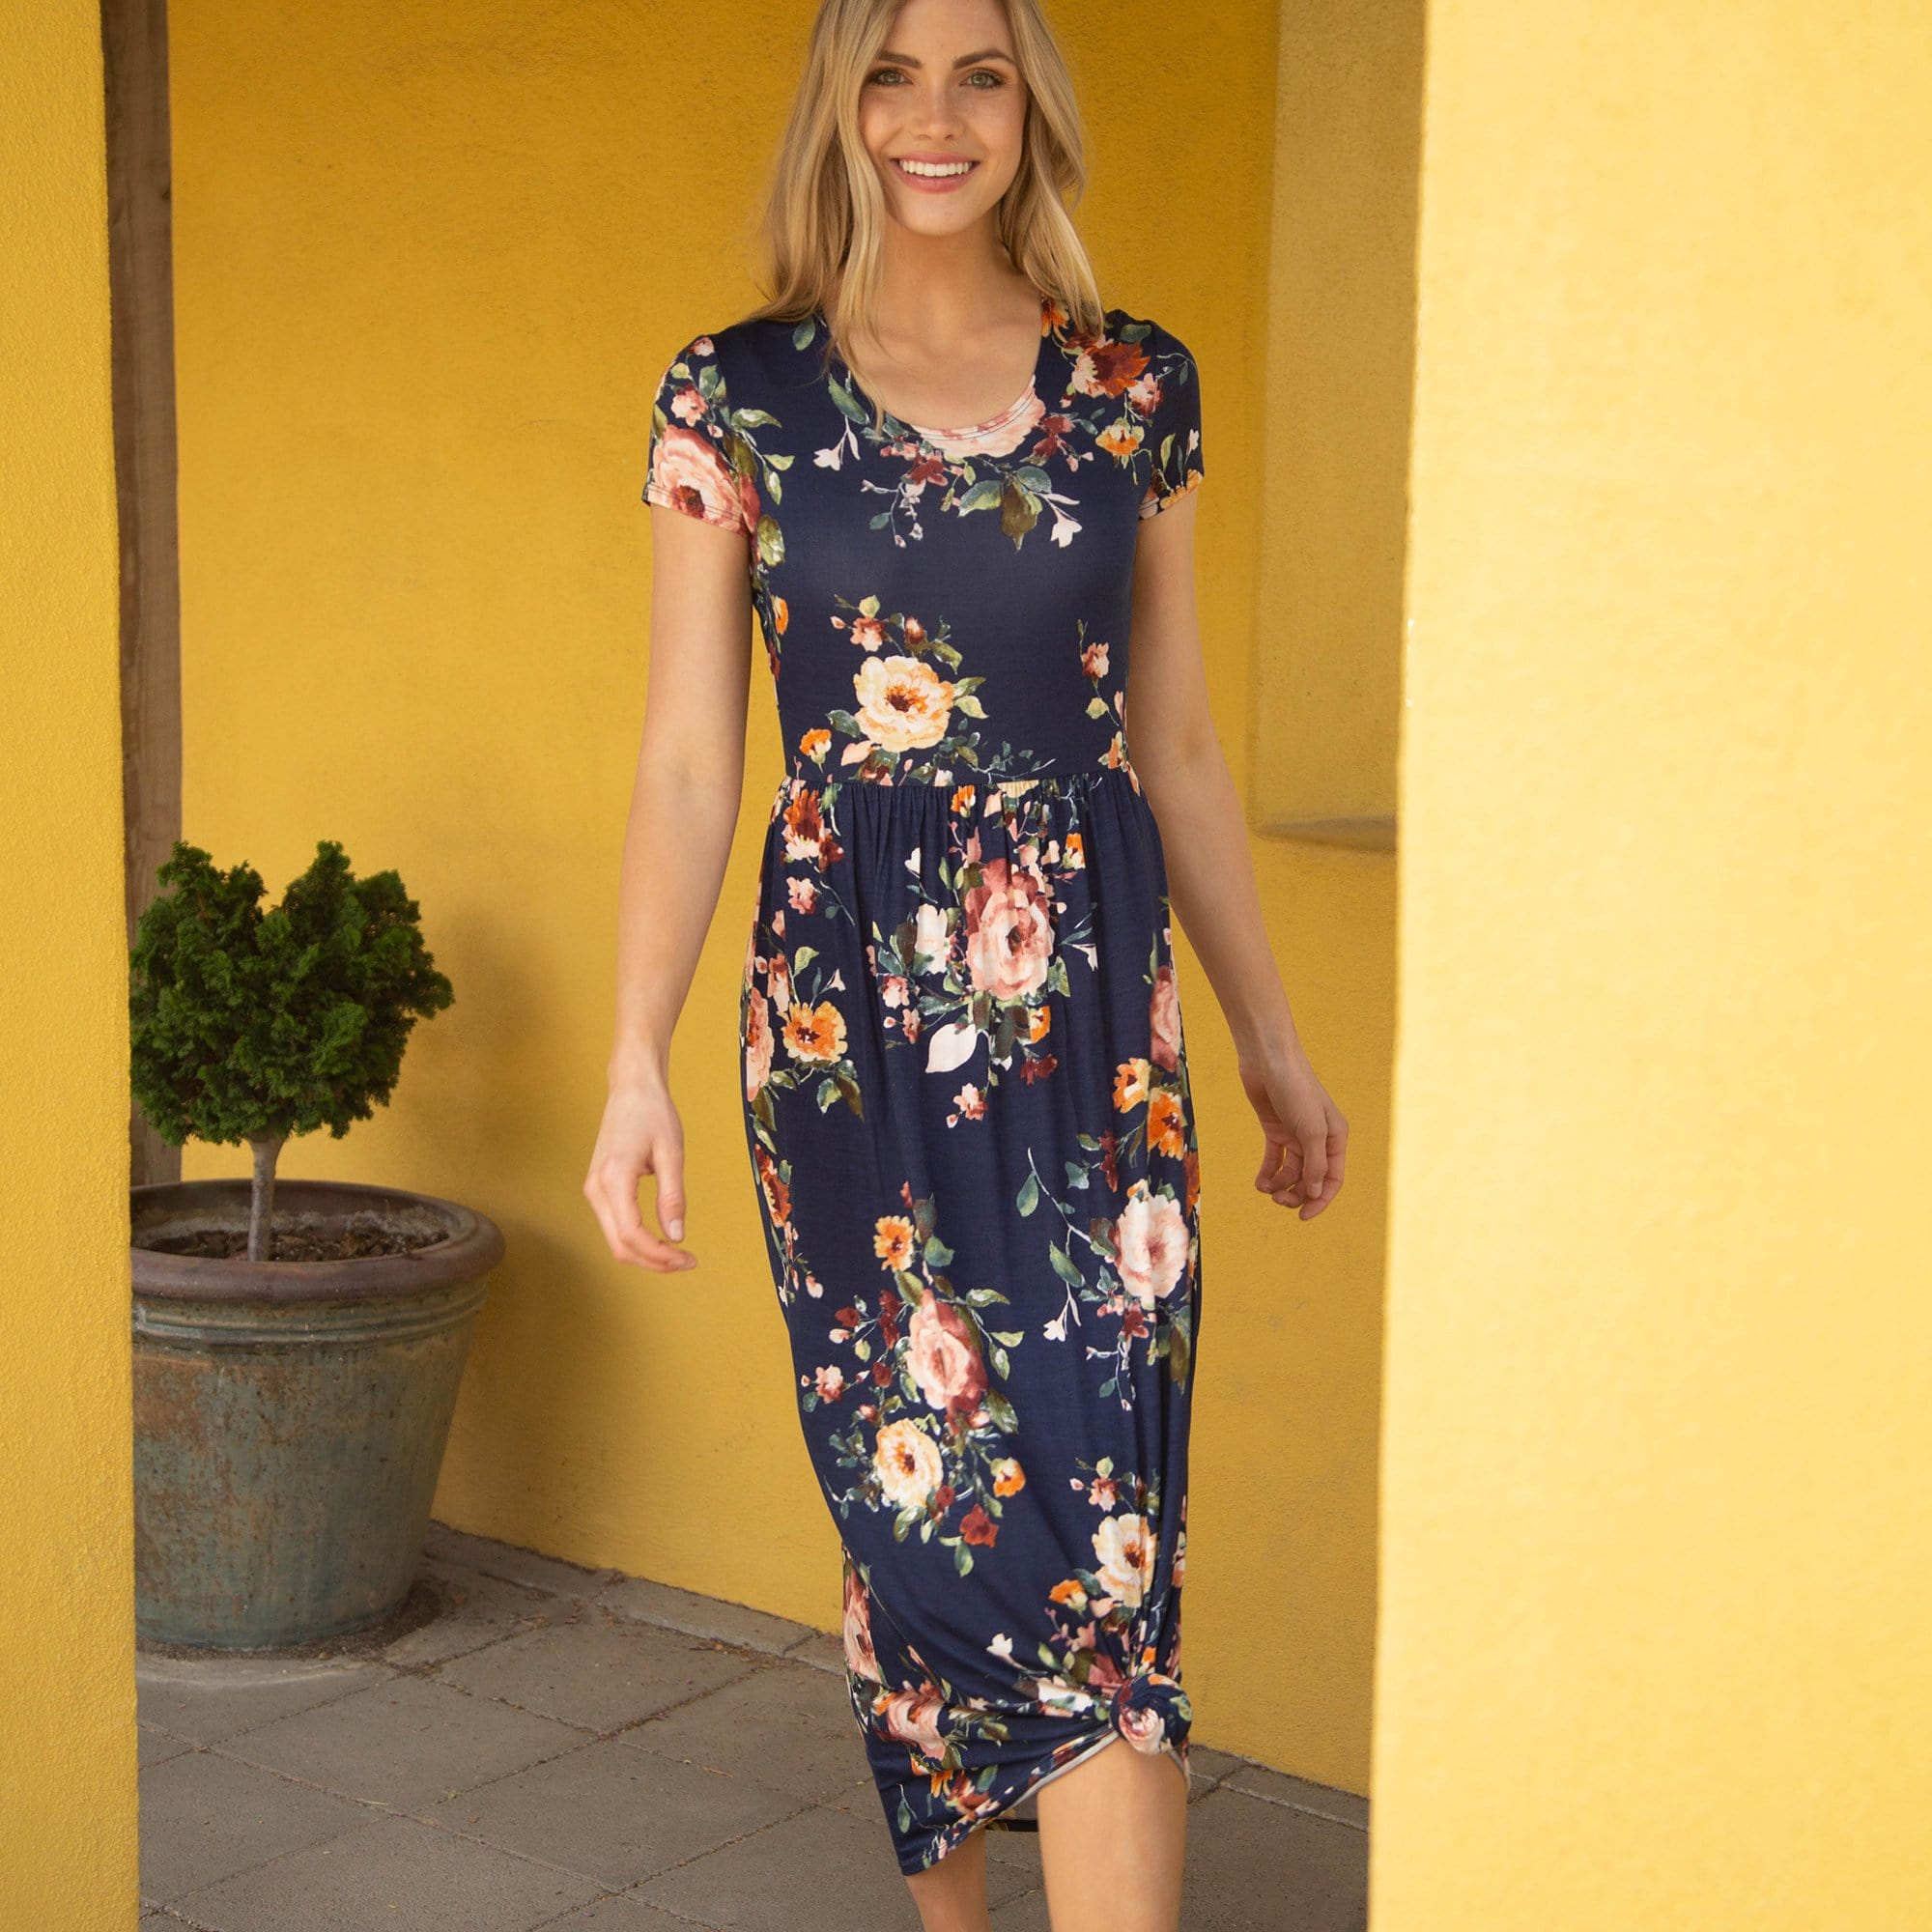 b77ec892ad91 Womens Dresses - Downeast